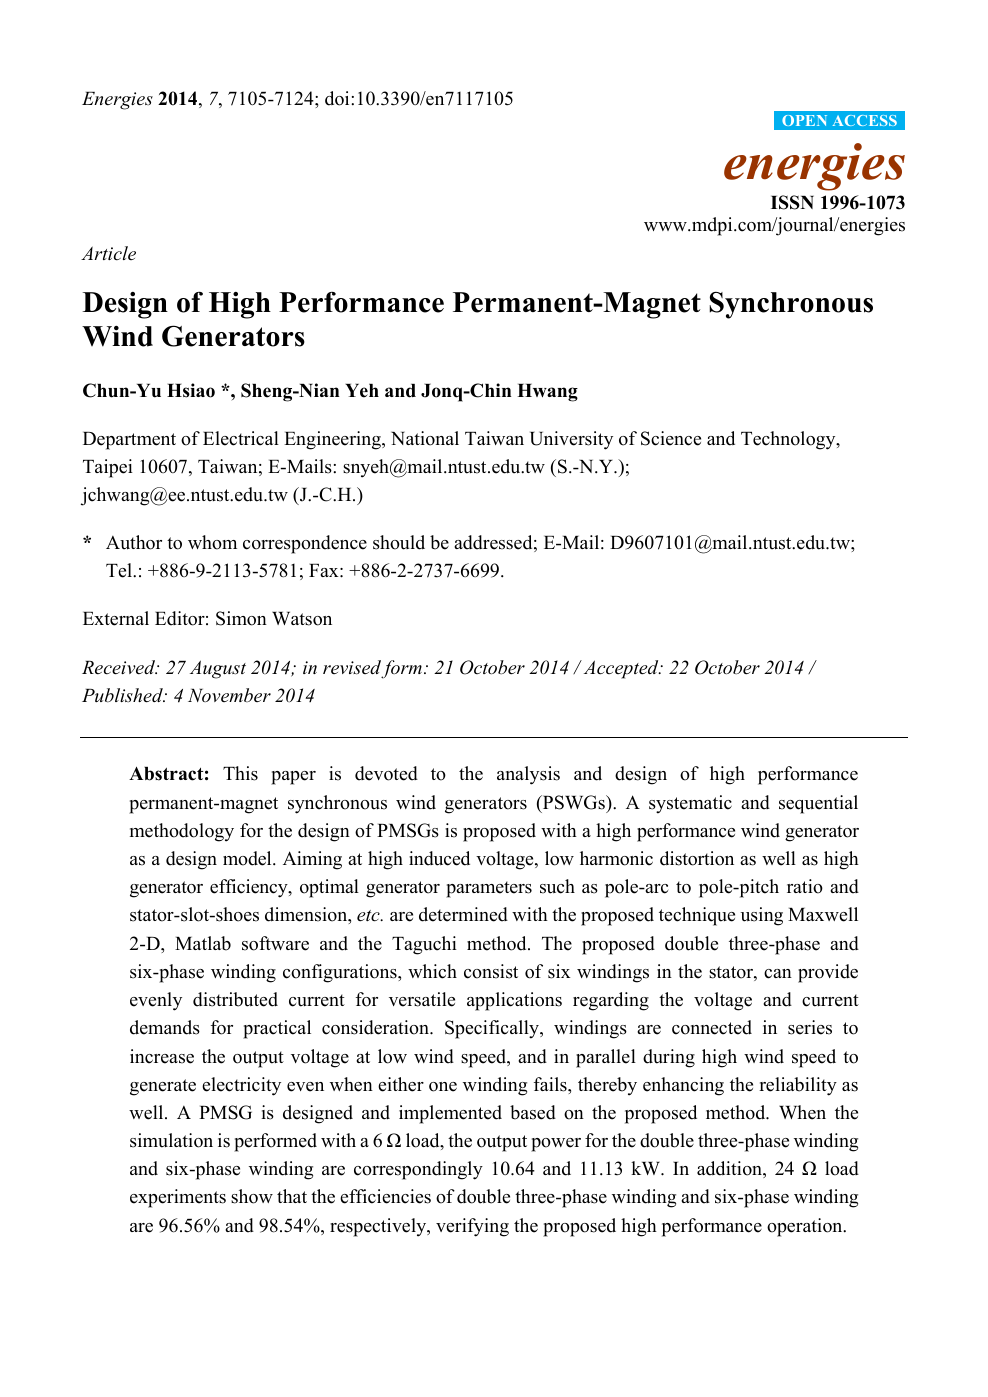 Design Of High Performance Permanent Magnet Synchronous Wind Generators Topic Of Research Paper In Electrical Engineering Electronic Engineering Information Engineering Download Scholarly Article Pdf And Read For Free On Cyberleninka Open Science